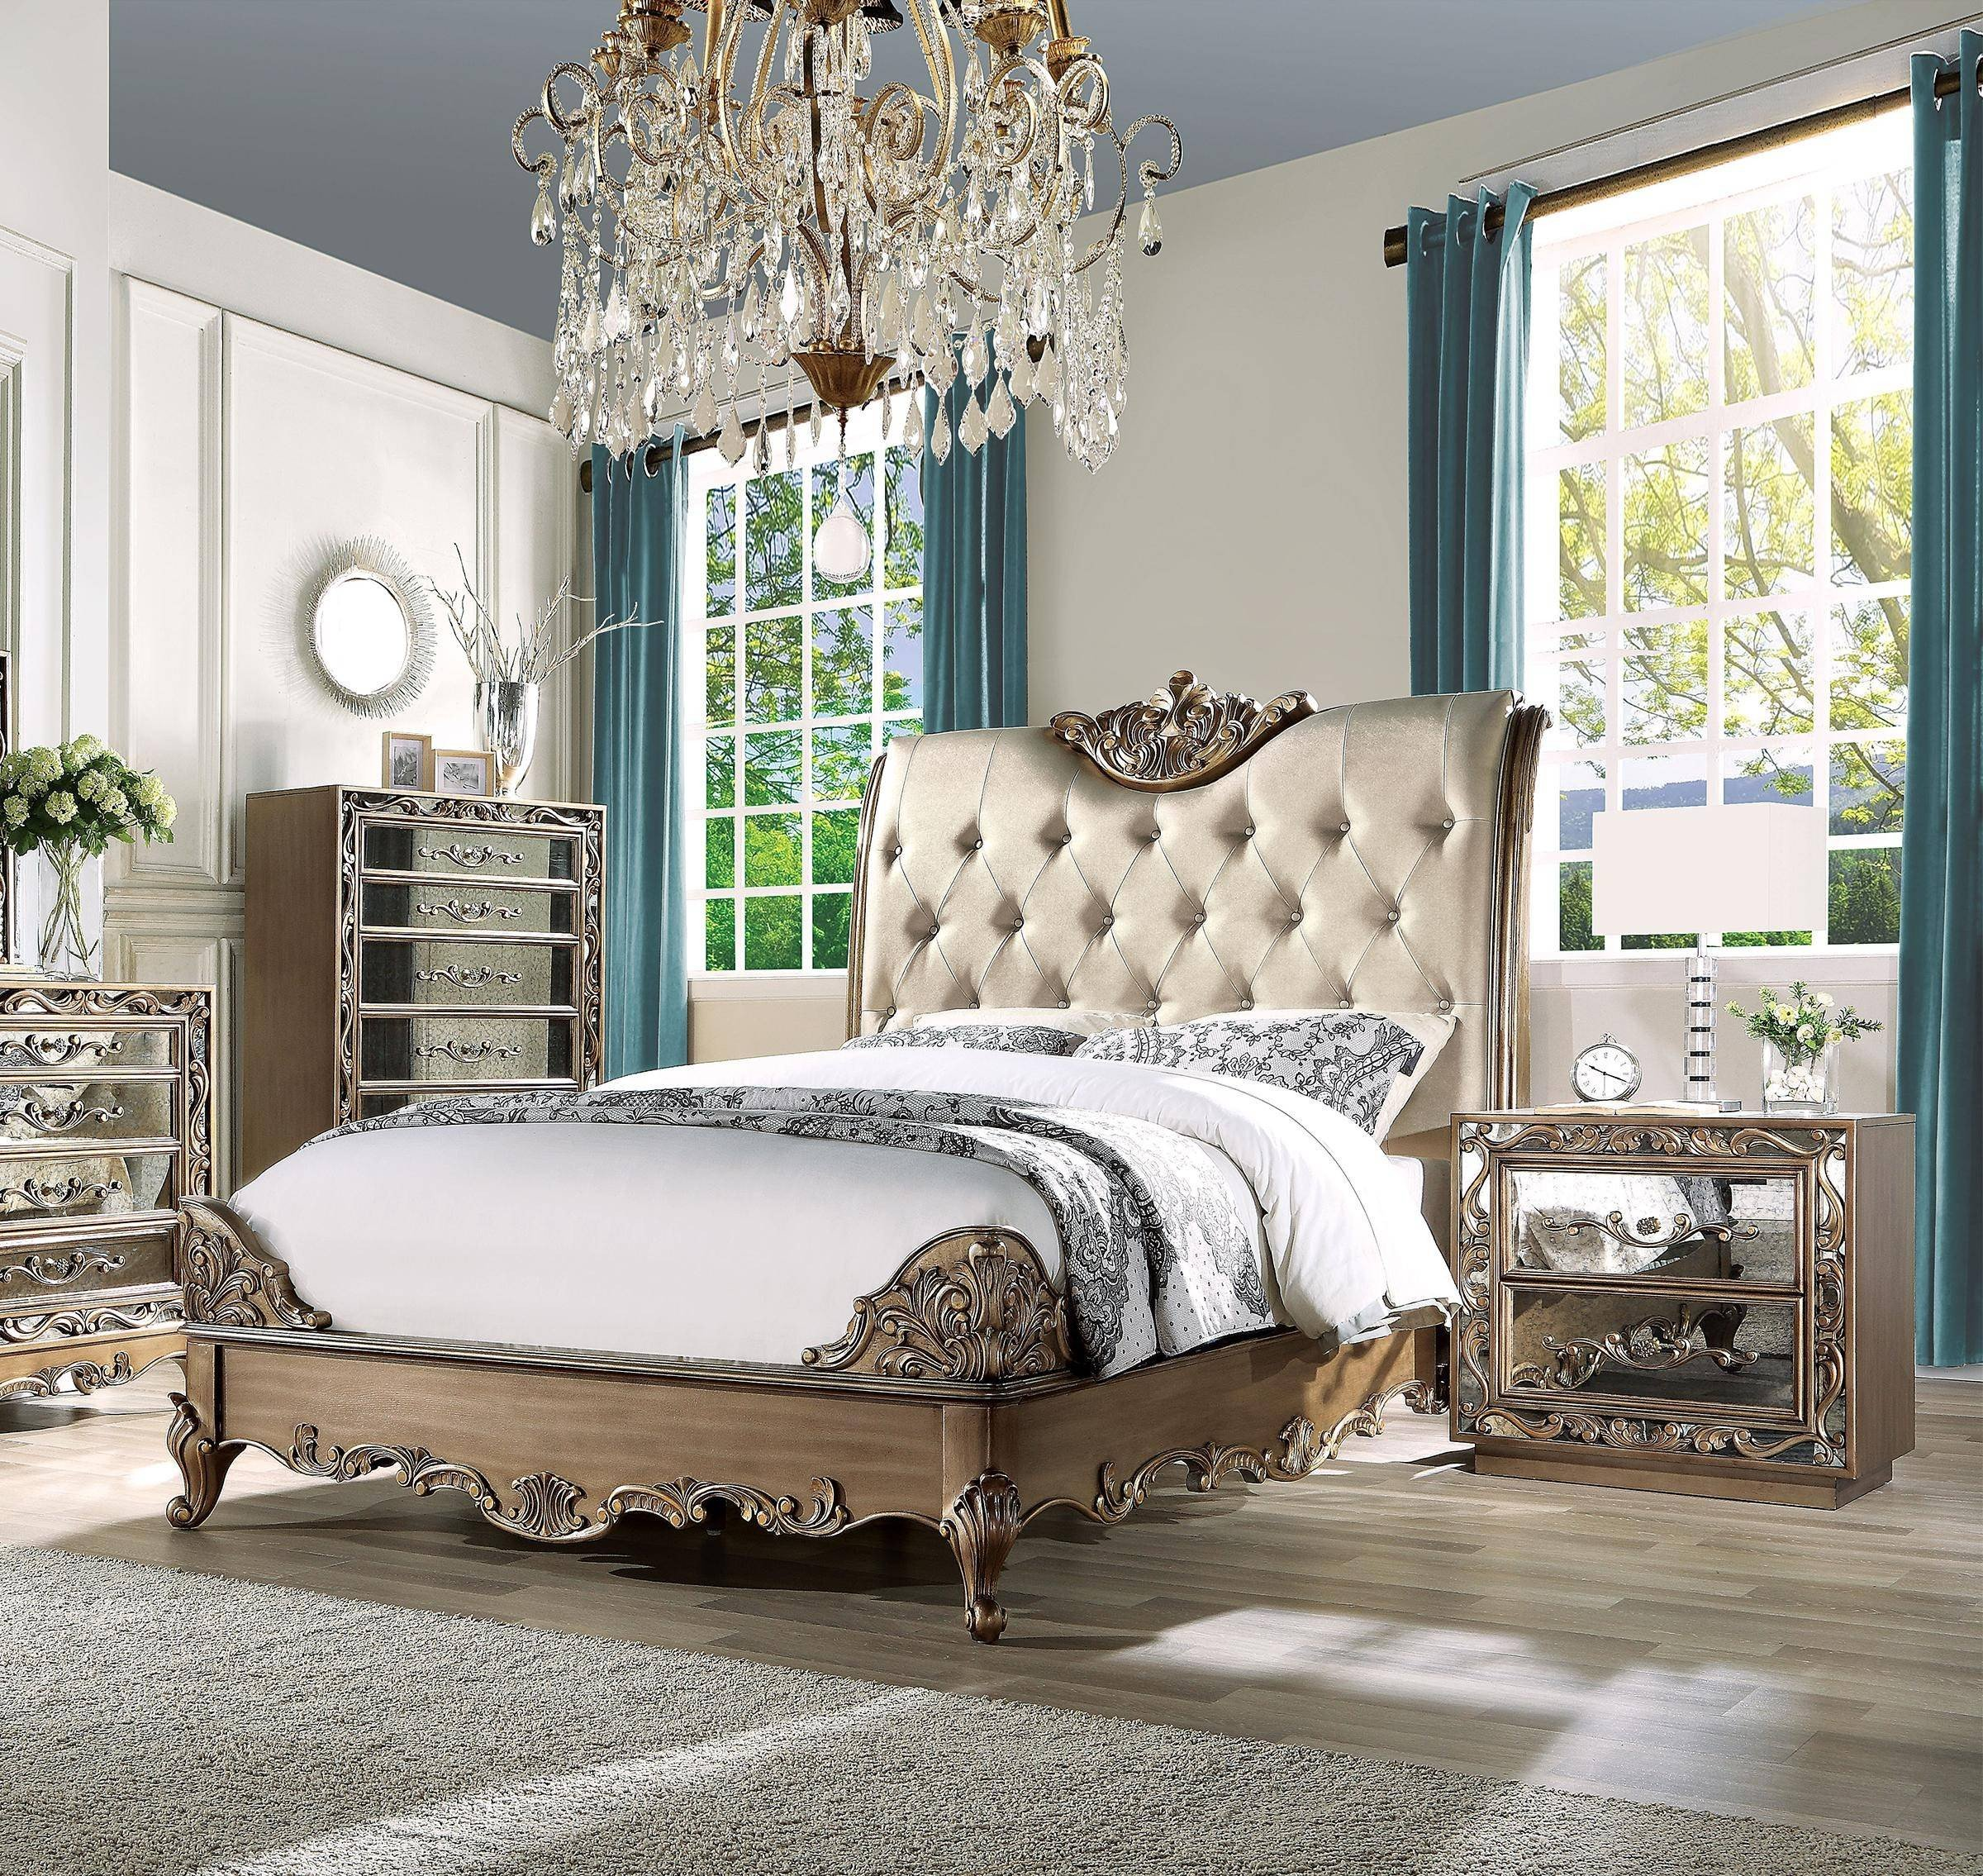 White and Gold Bedroom Set Fresh Luxury King Bedroom Set 3 Antique Gold Champagne F Leather